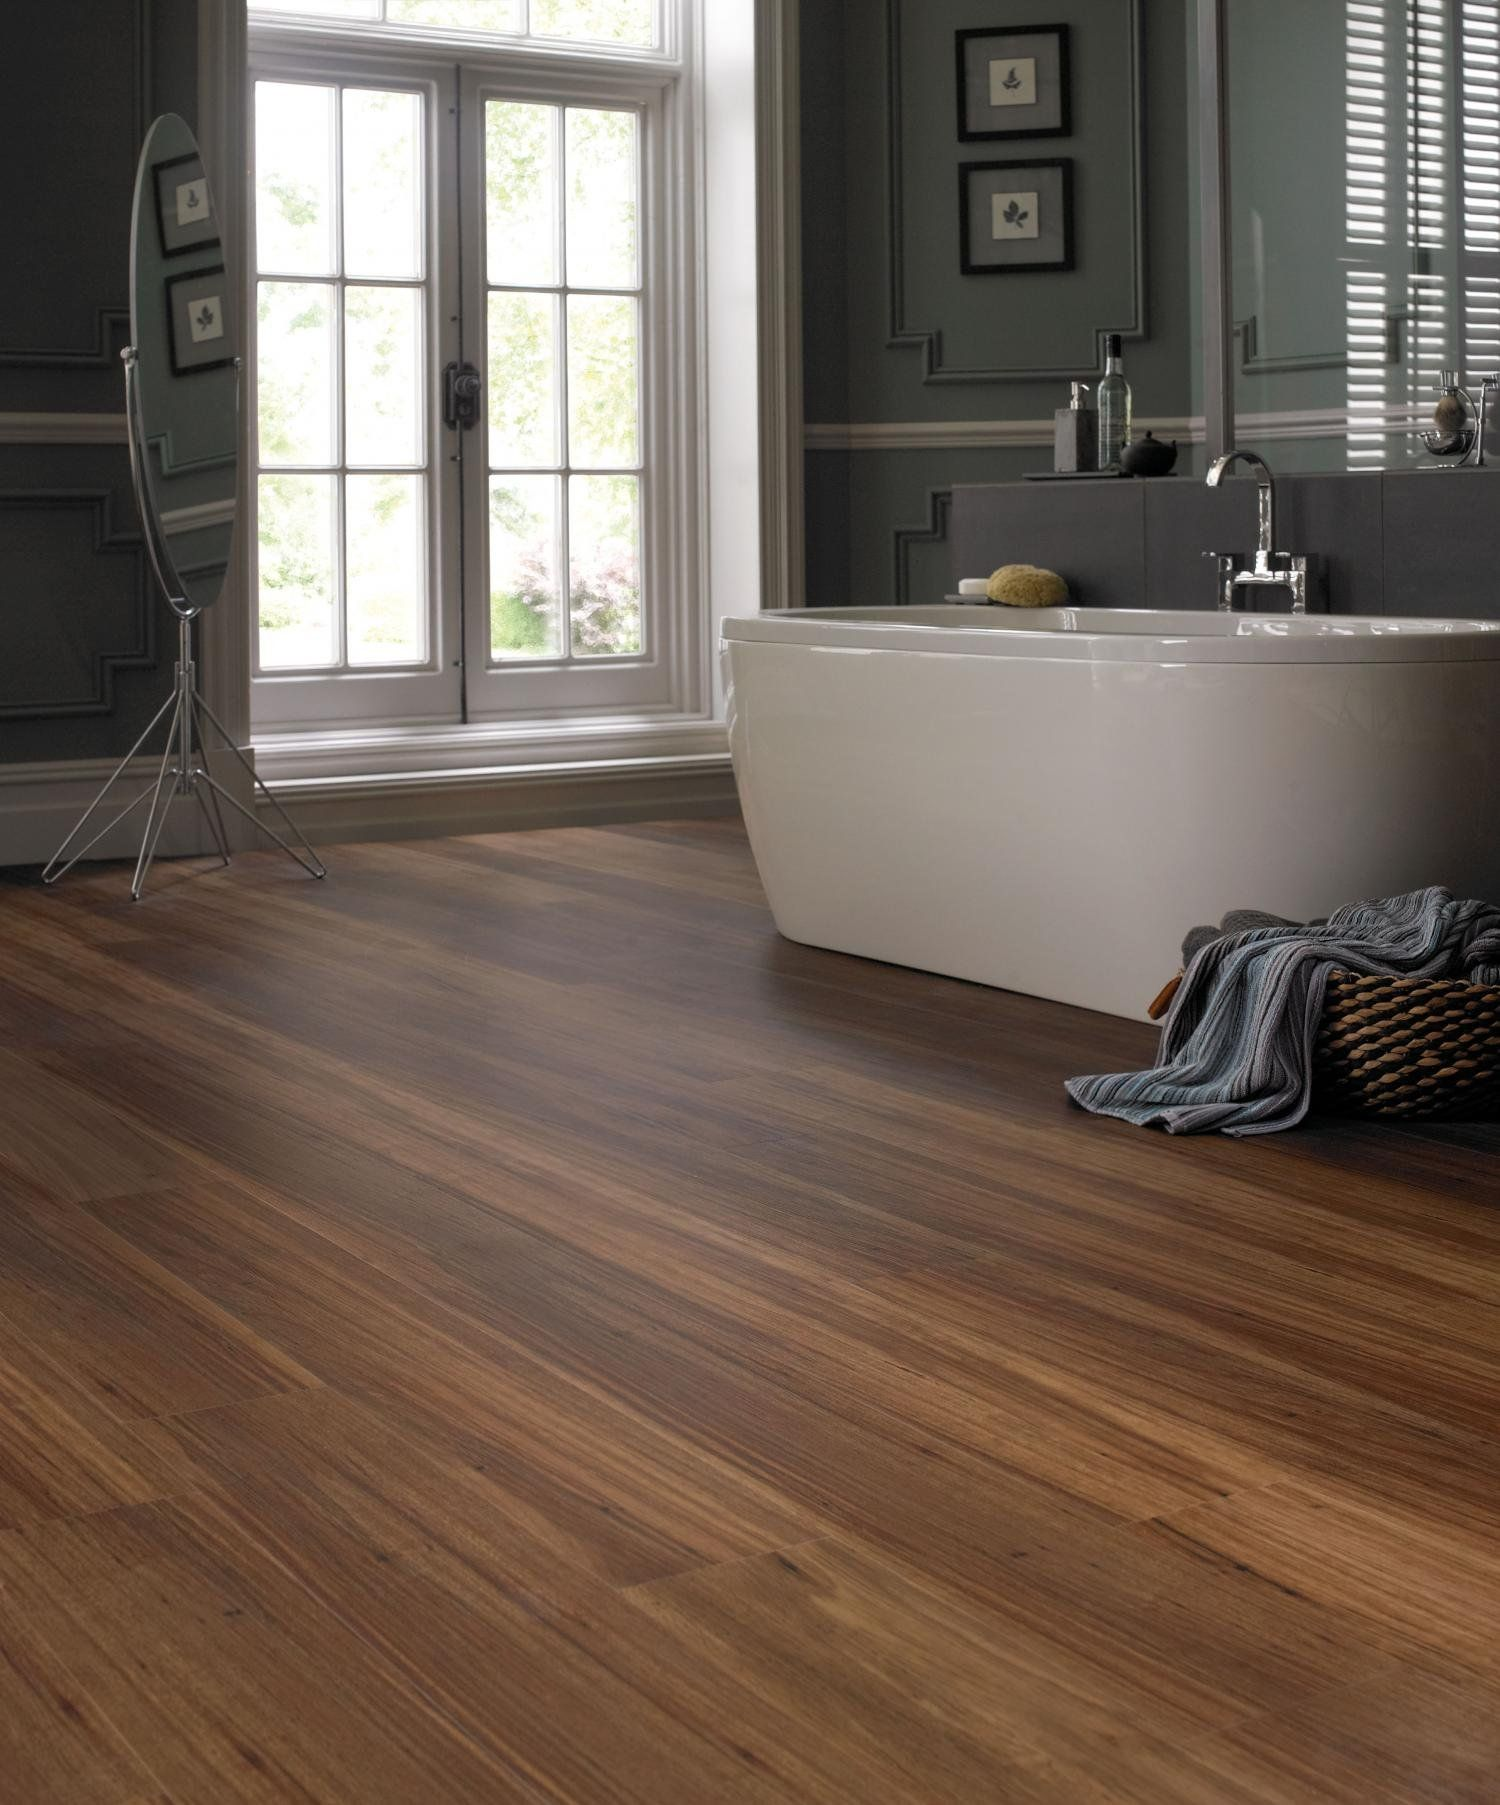 Spectacular wood look tile flooring bathroom design with for Grey bathroom laminate flooring